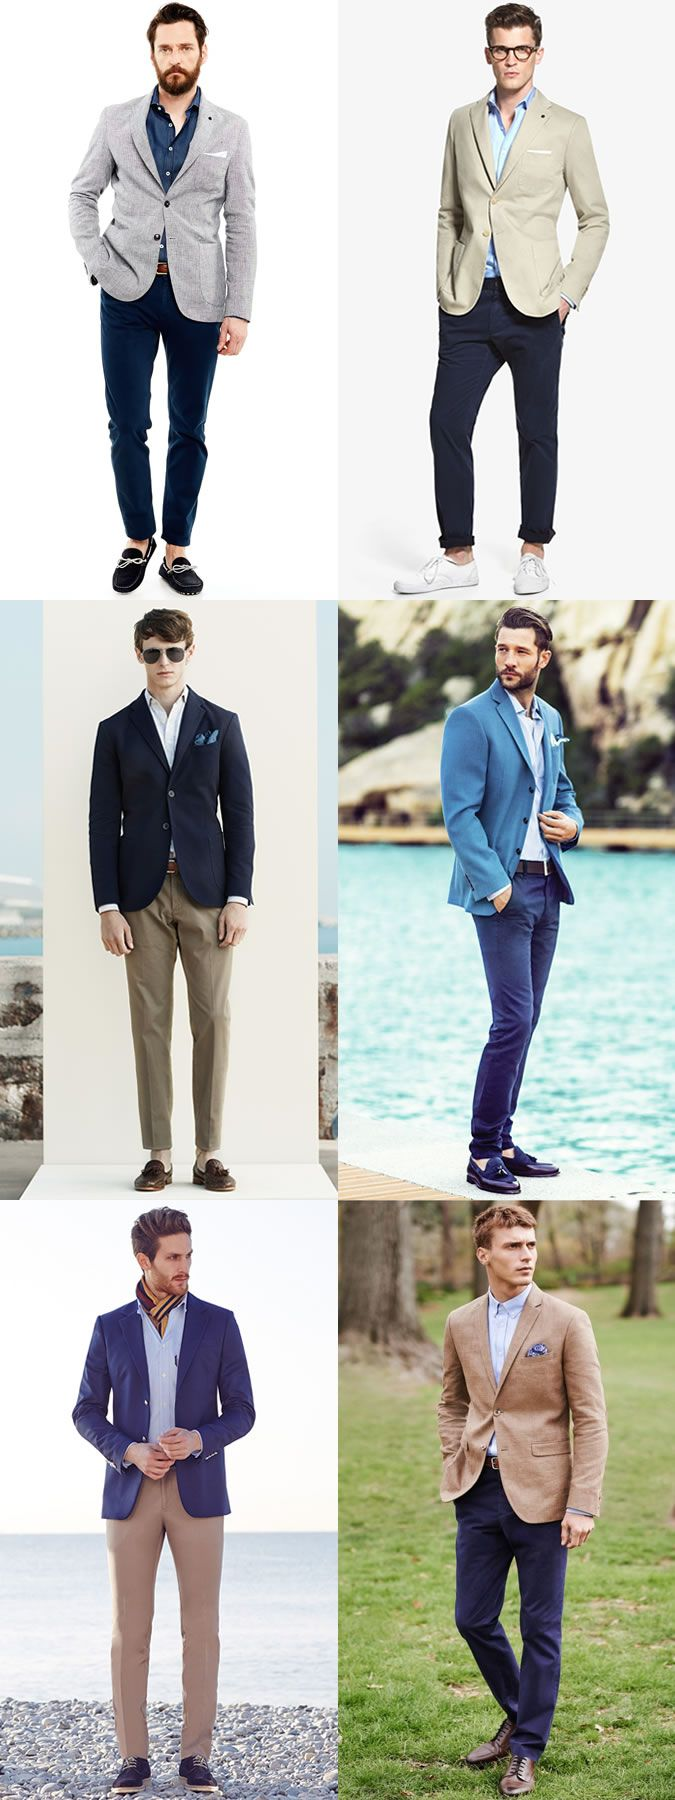 Men's Chinos, Oxford Shirt and Blazer Outfit Inspiration Lookbook